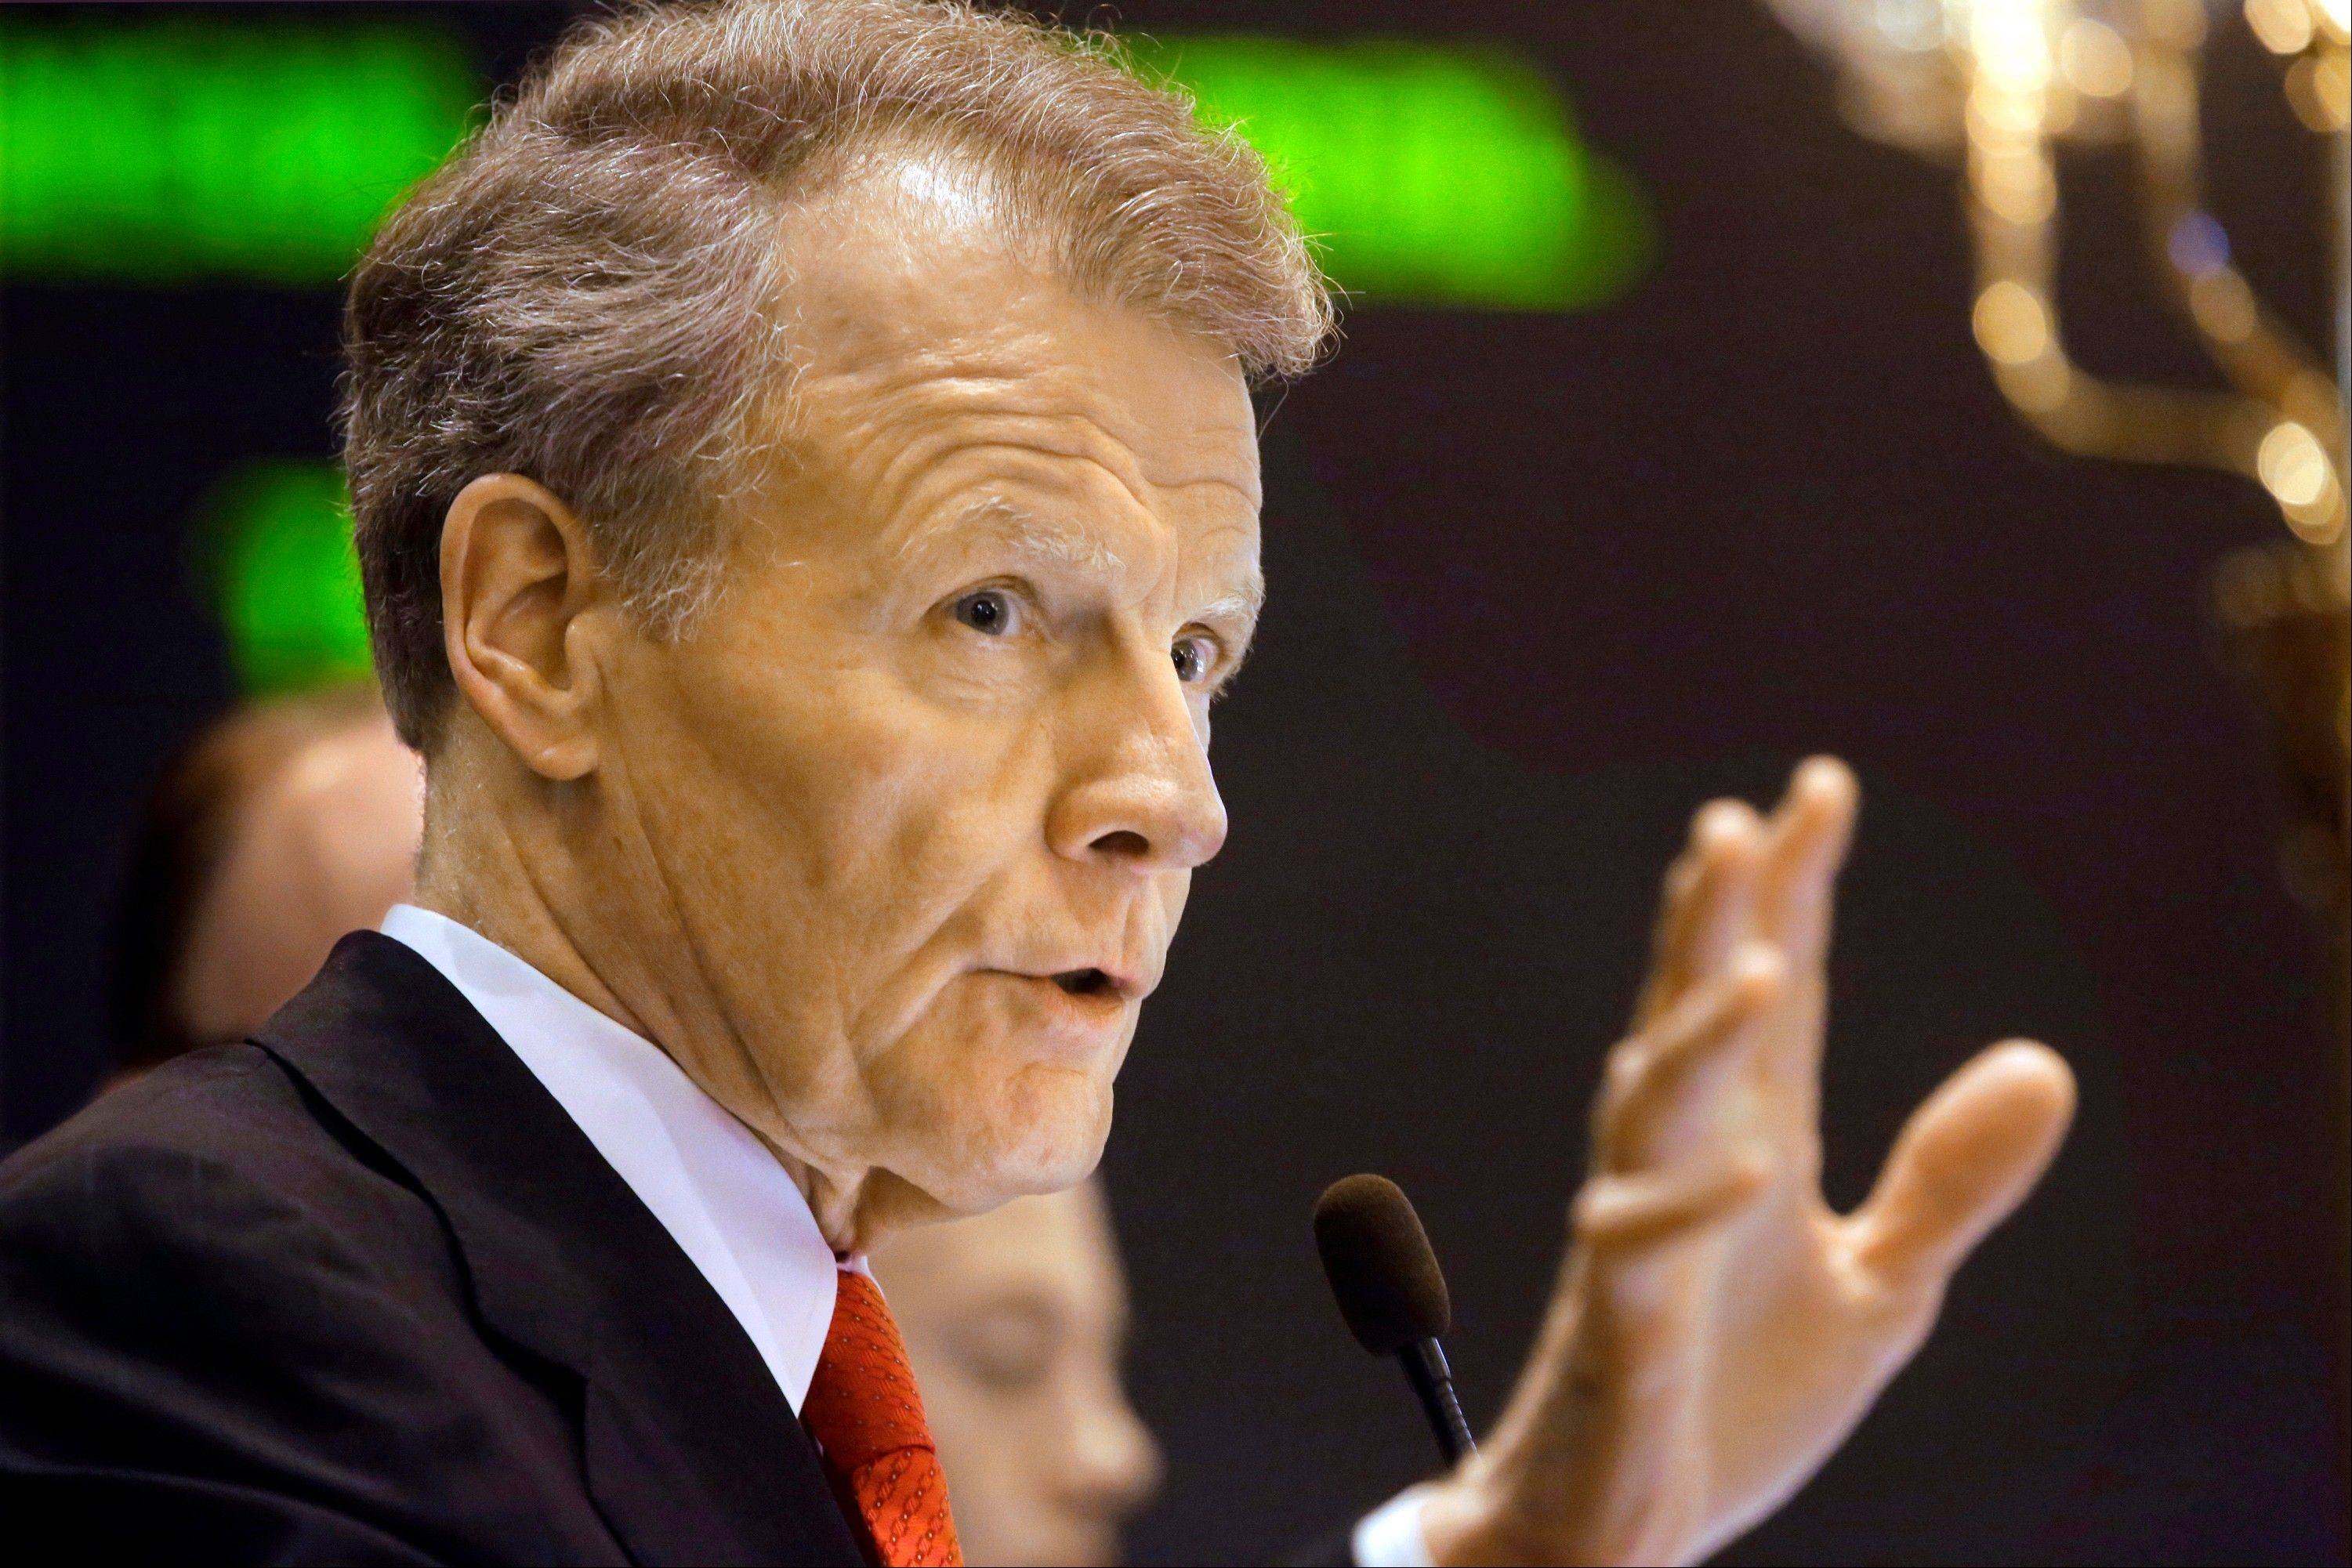 House Speaker Michael Madigan is planning a new vote on his preferred pension plan, which would unilaterally impose pension changes on state workers and raise the retirement age.